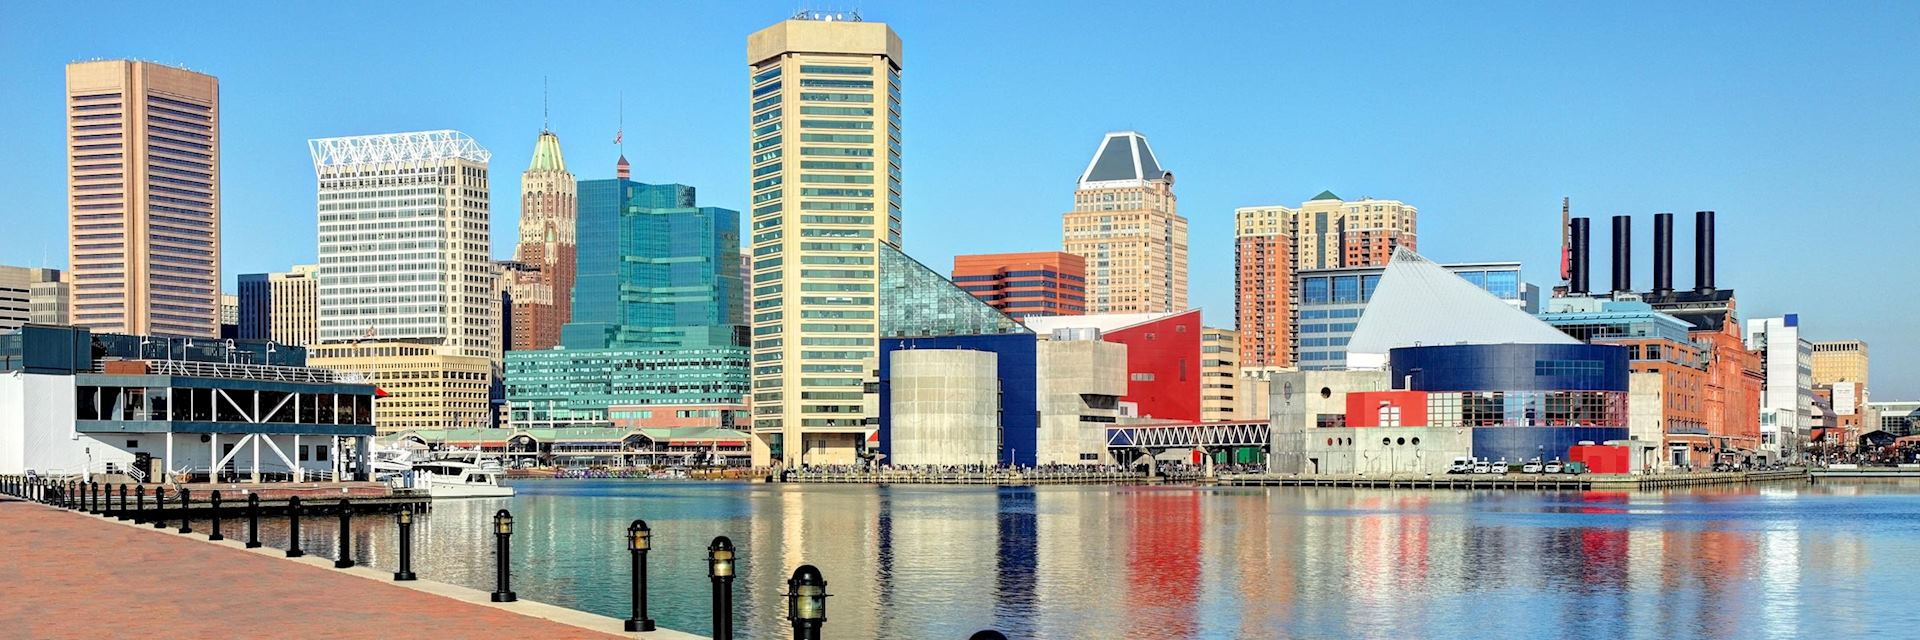 Baltimore's inner harbour, the USA